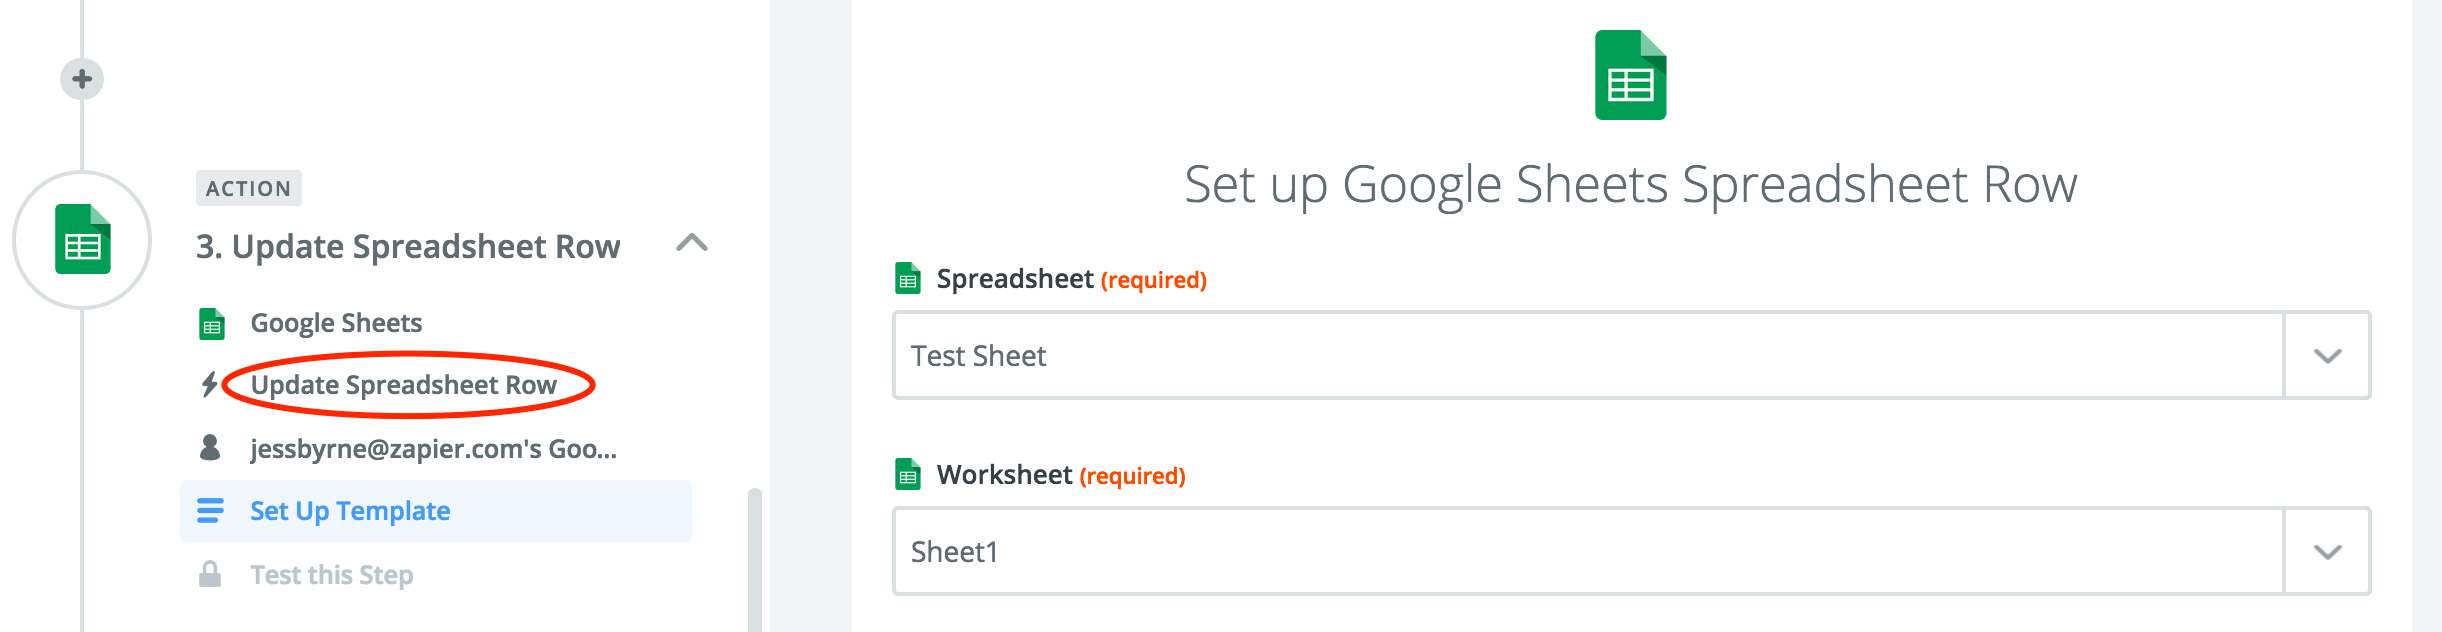 Google Sheets - Integration Help & Support | Zapier